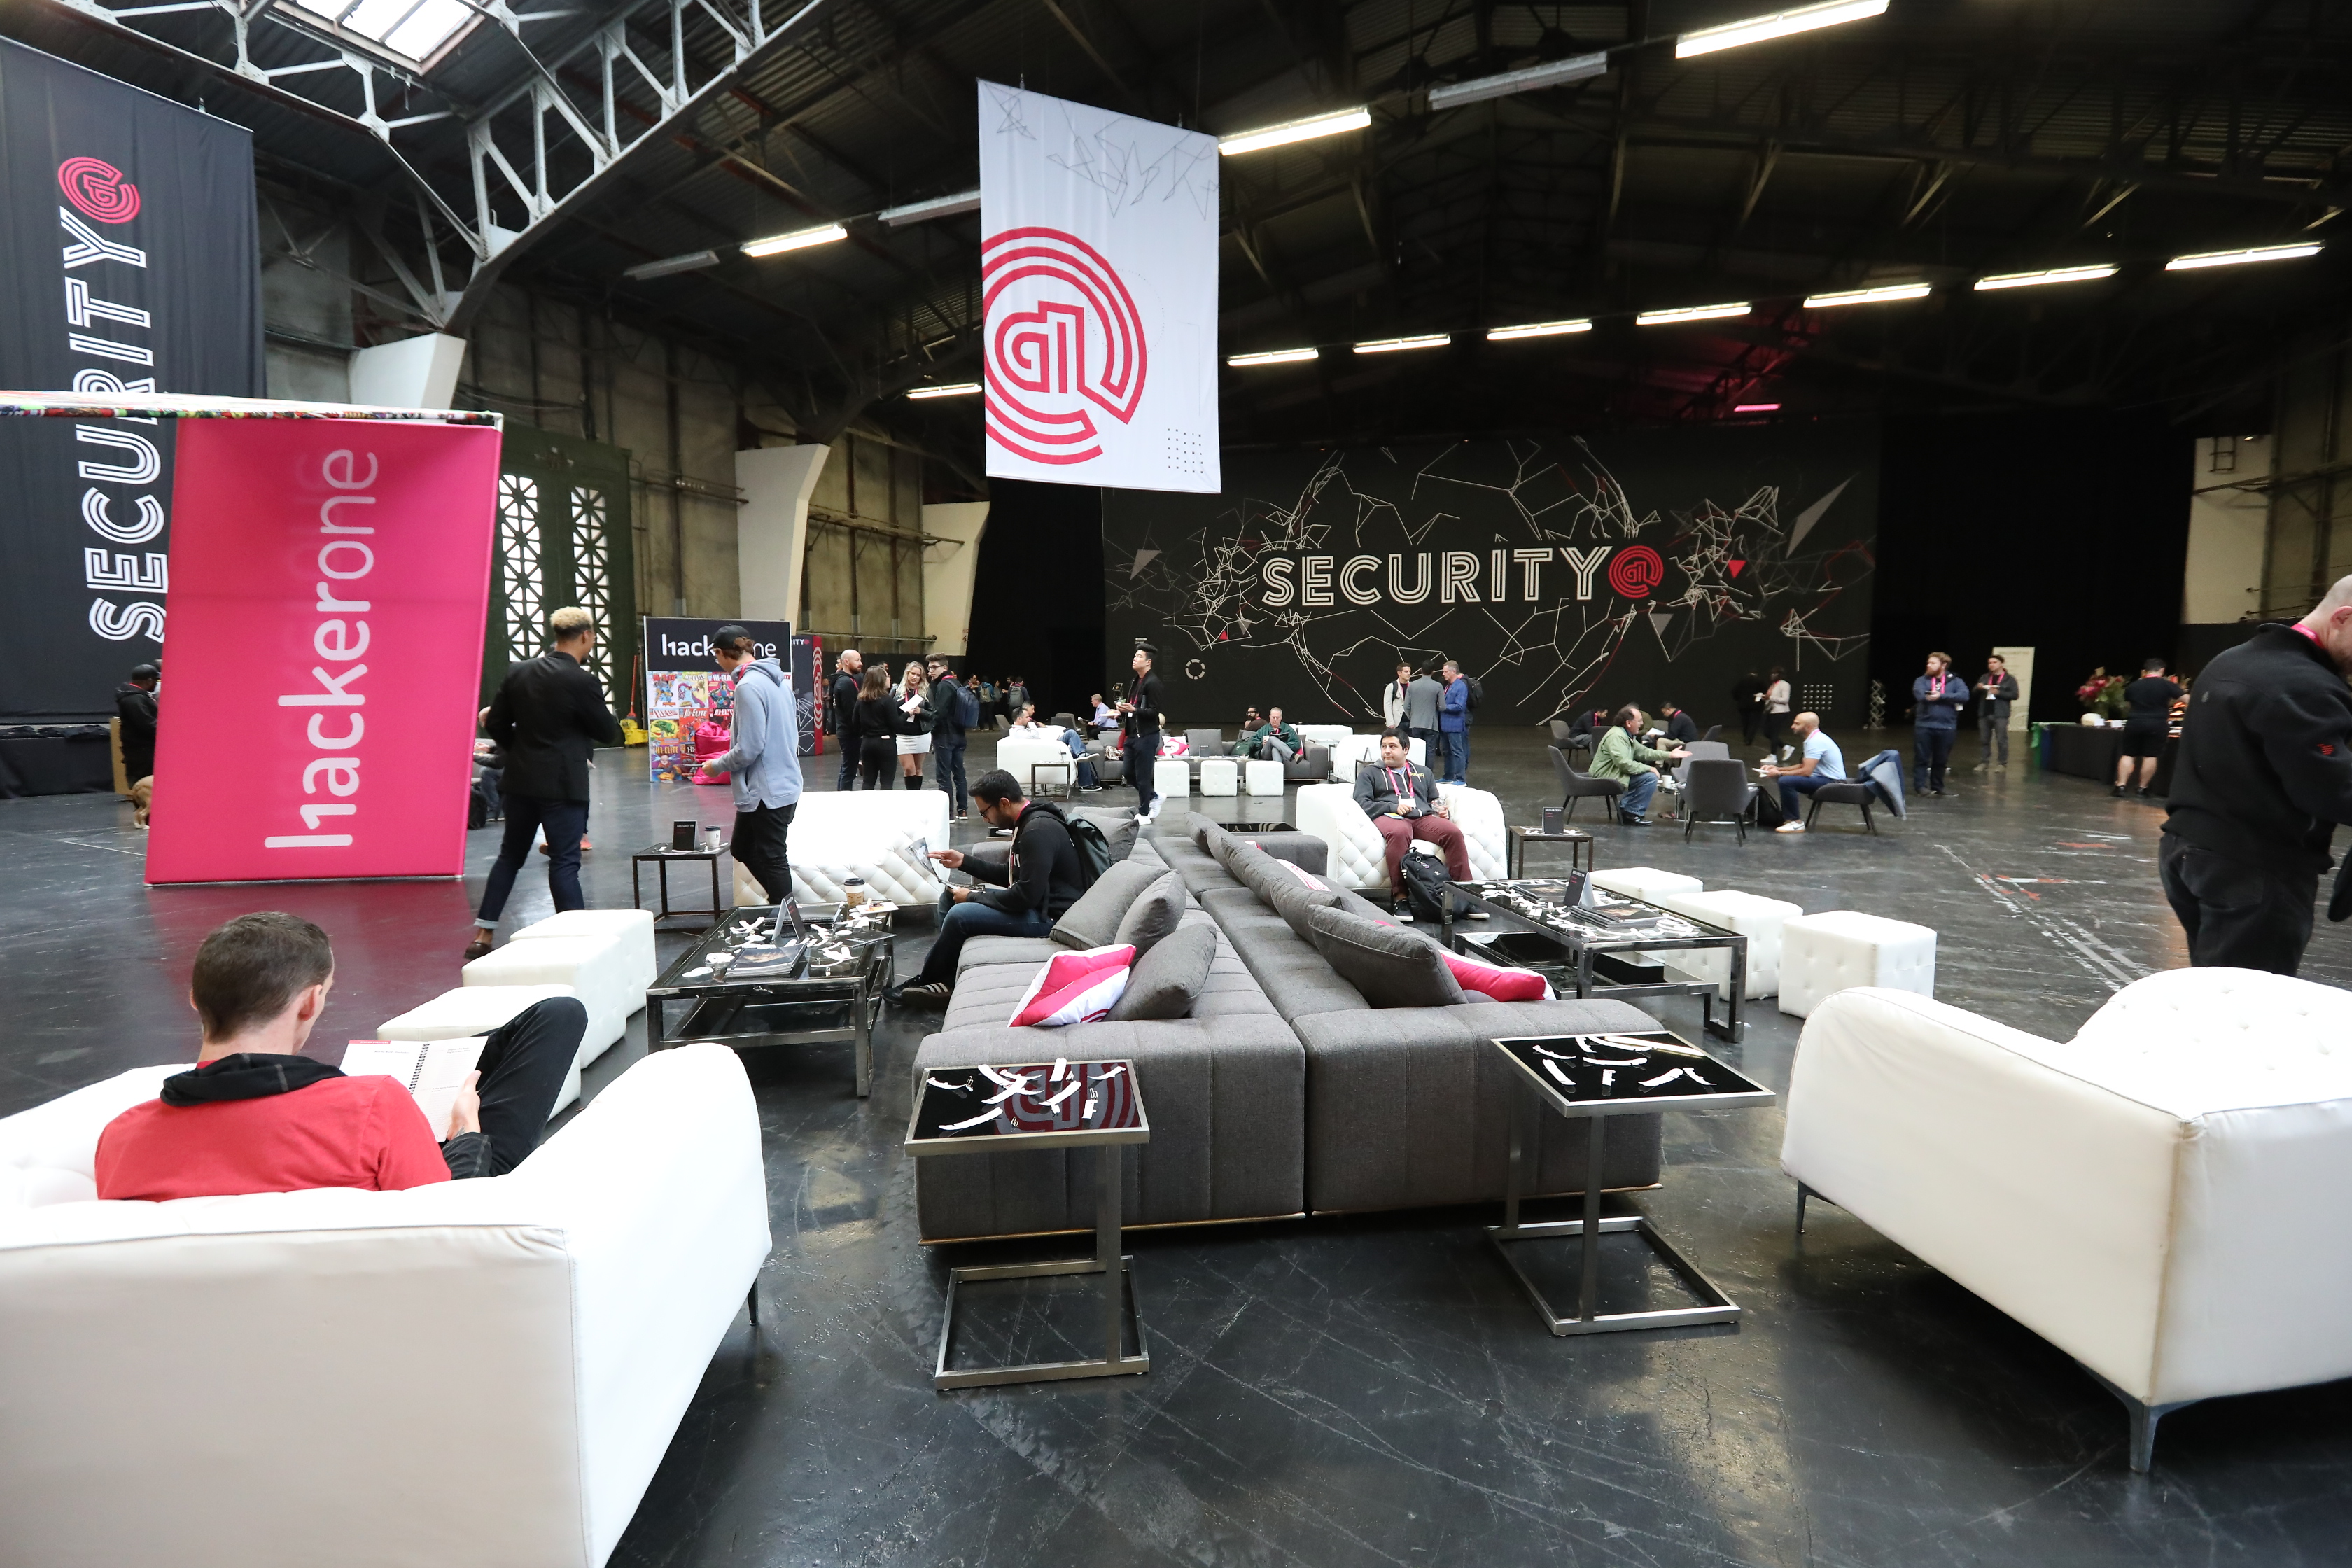 Security@ conference